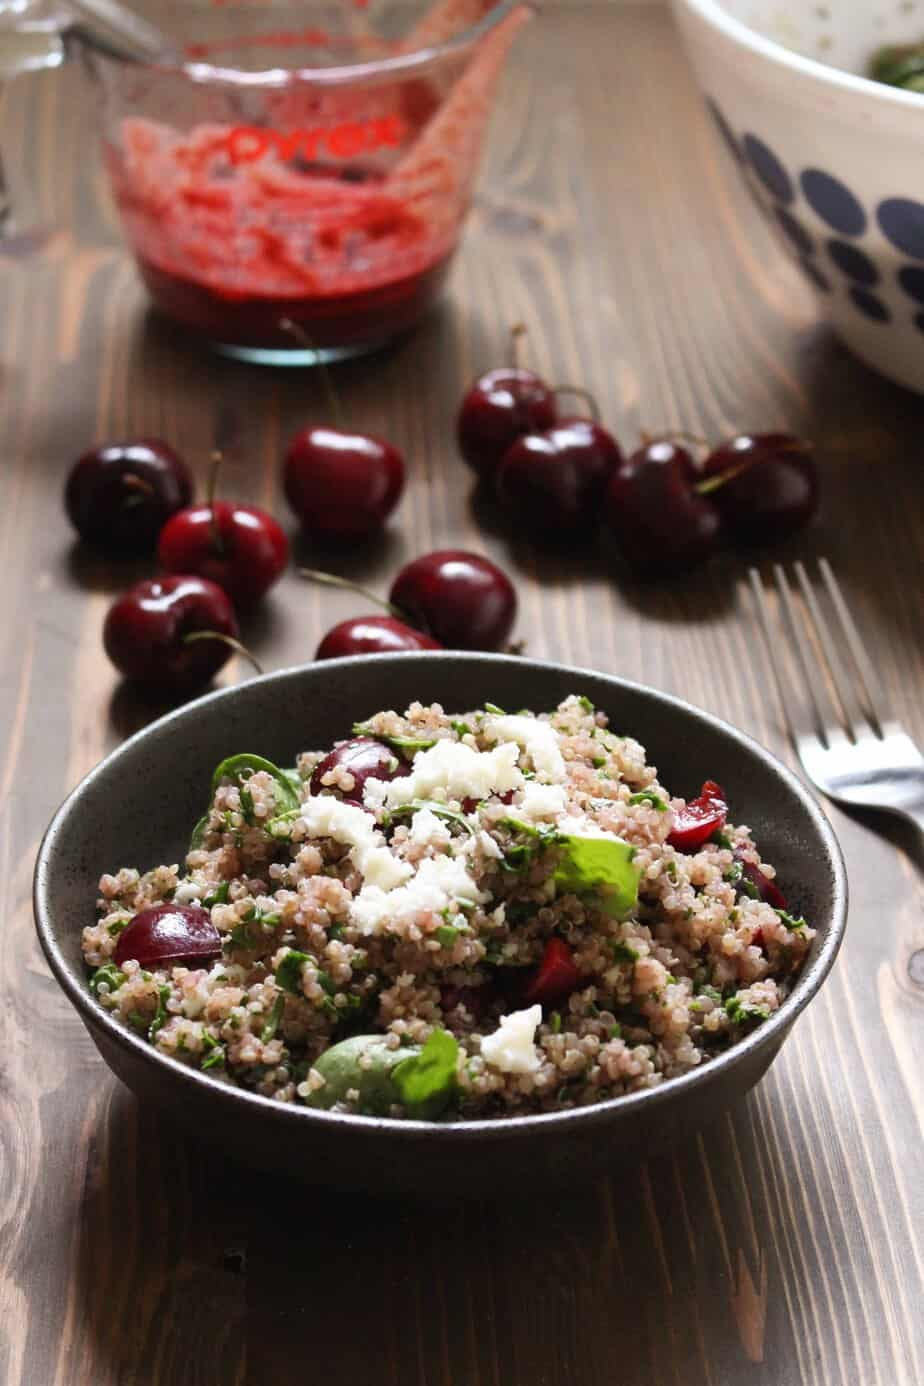 ... Cherry Balsamic Quinoa Salad with Spinach and Feta | Frugal Nutrition